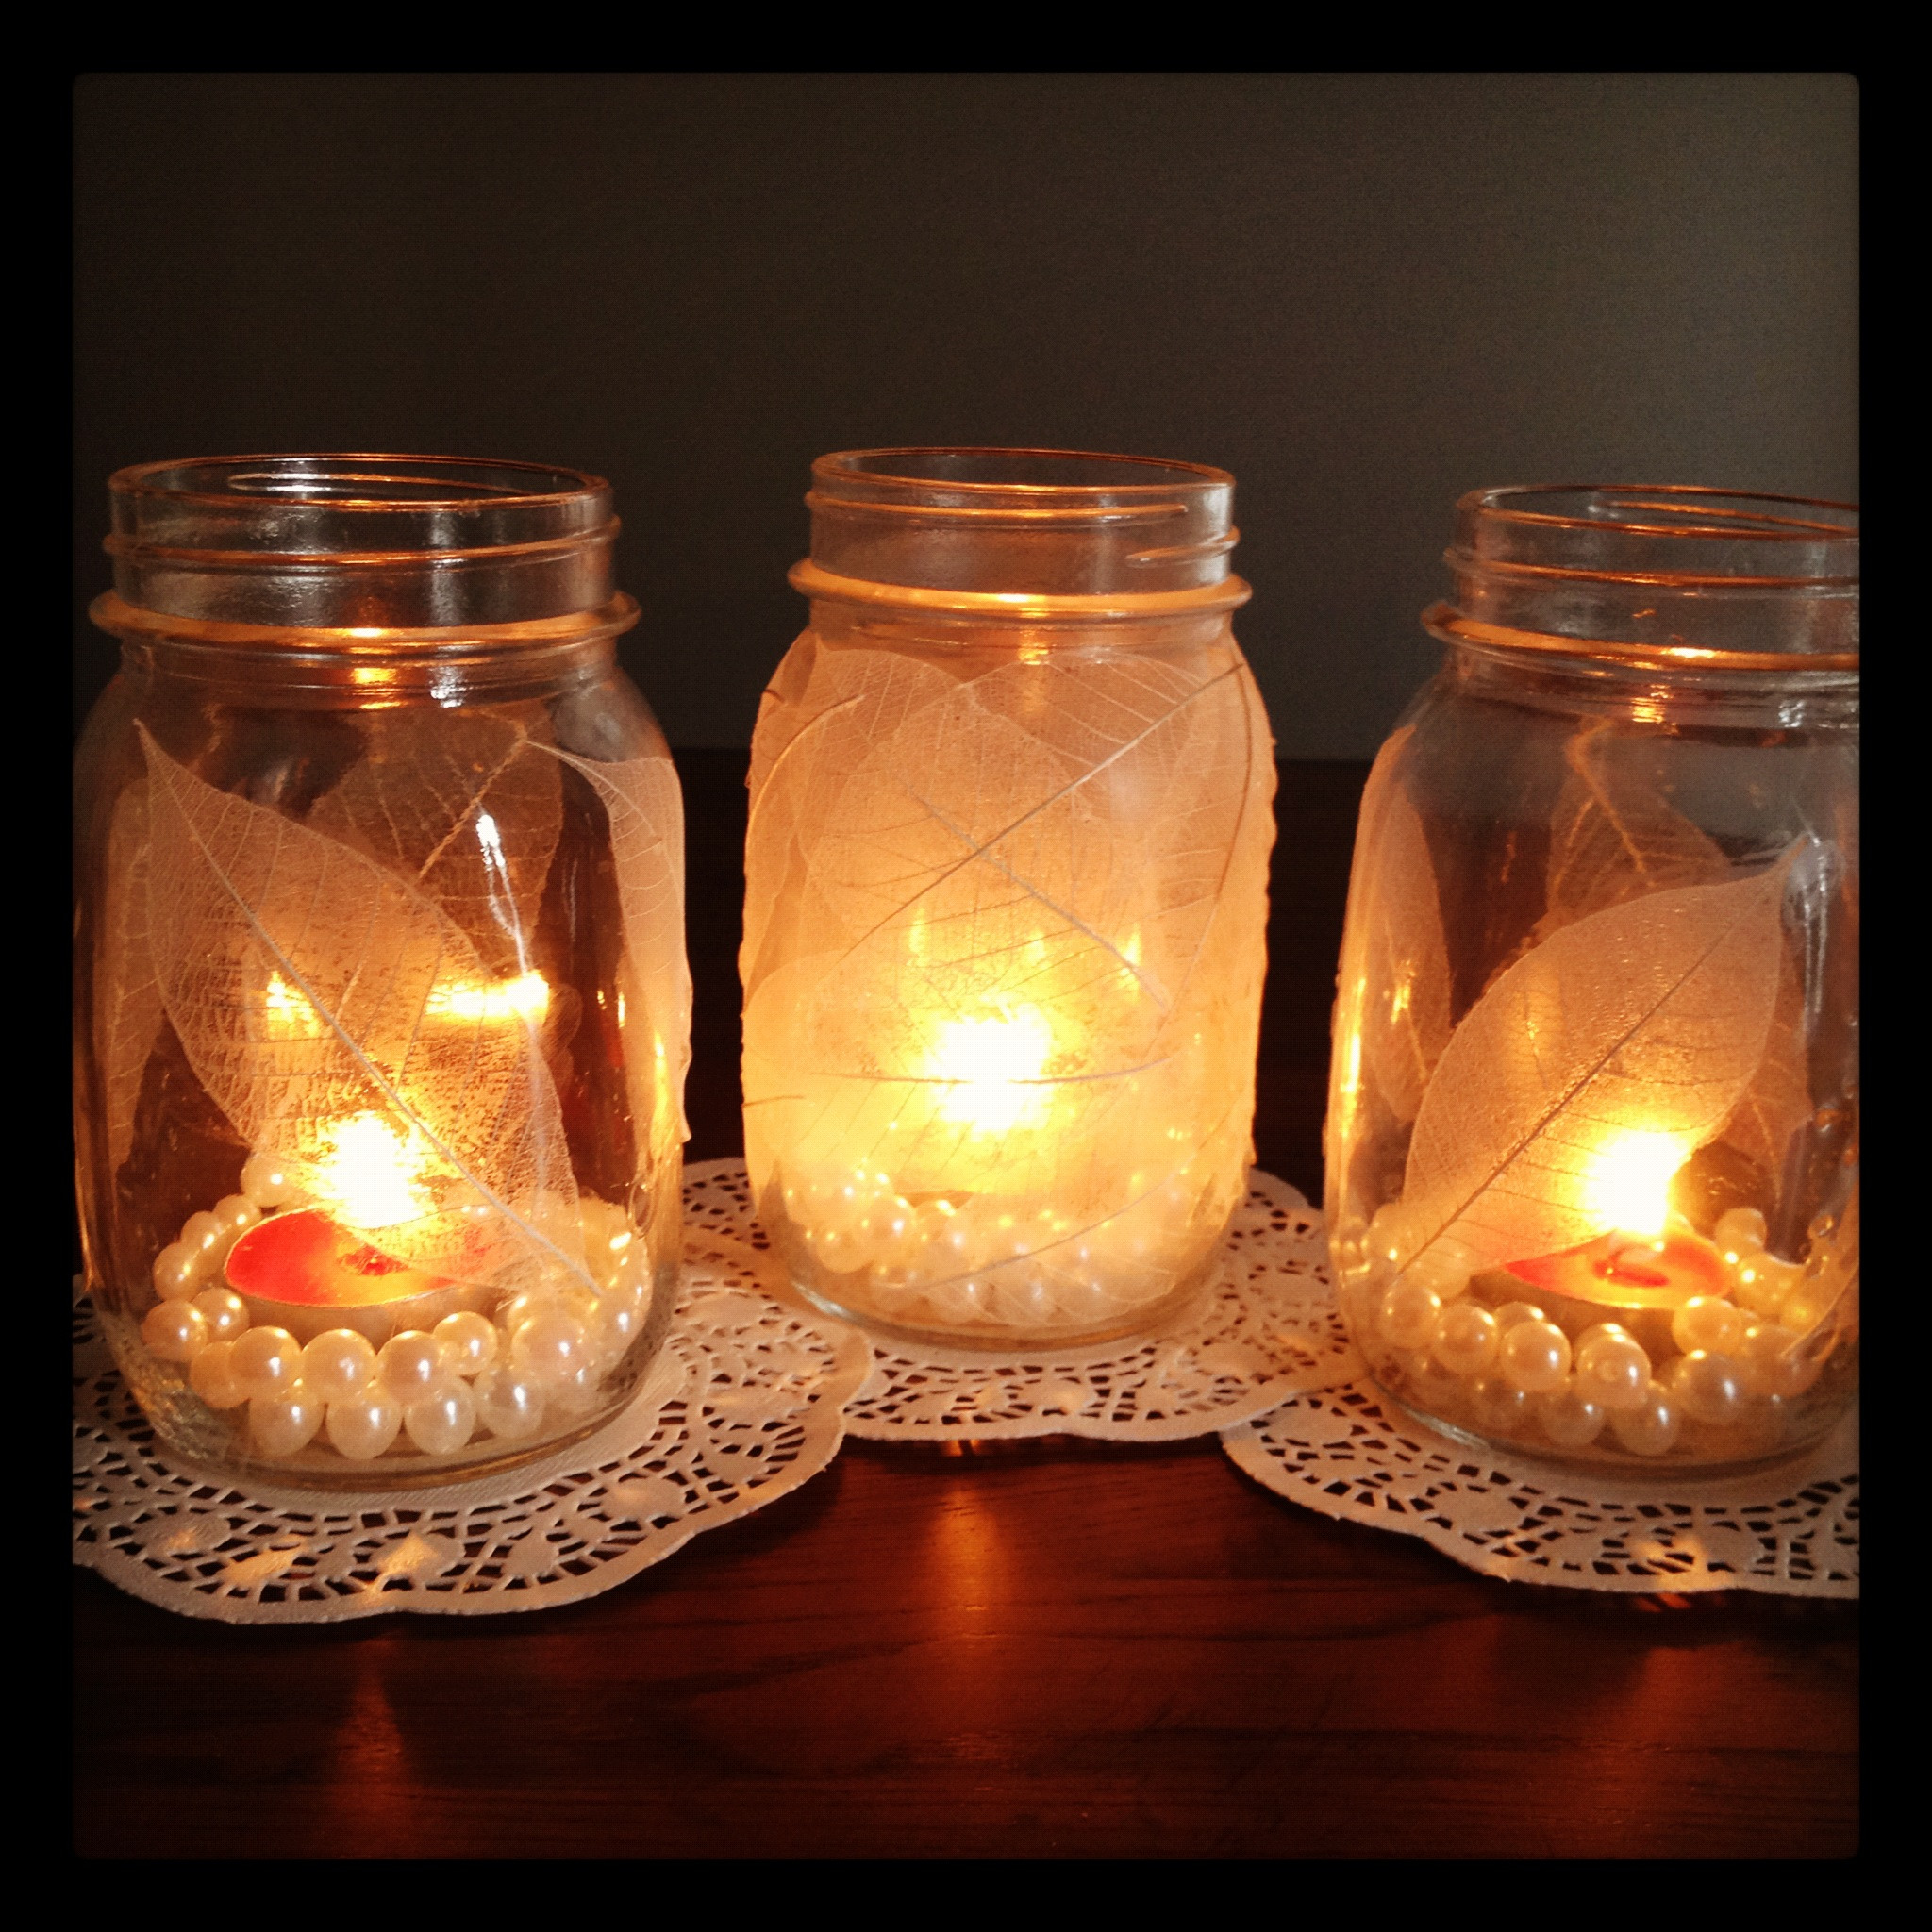 Best ideas about DIY Candle Holders . Save or Pin DIY Homemade Votive Candle Holders Now.